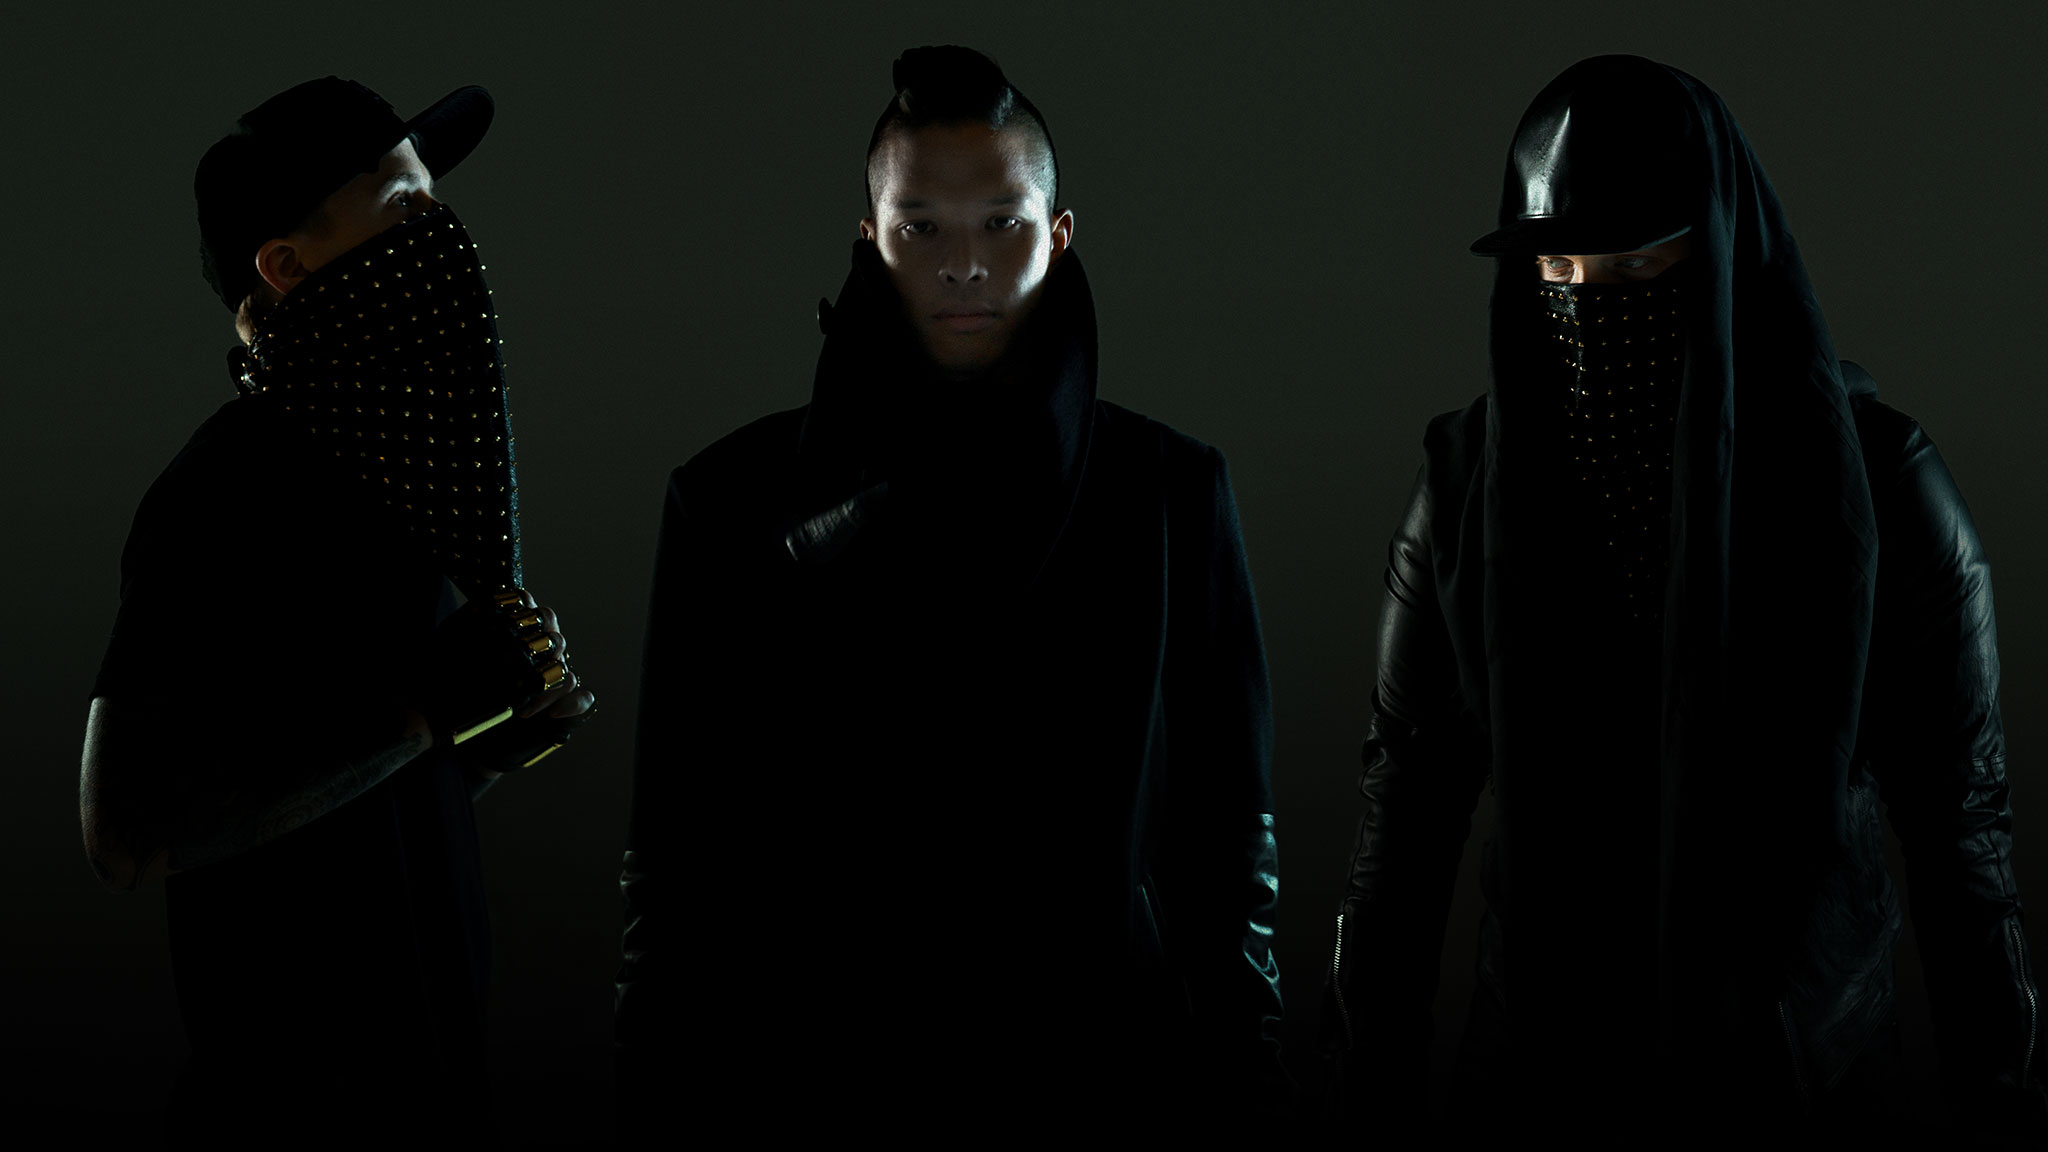 Los Angeles-based EDM trio The Glitch Mob will perform on the Sound Factory stage at X Games Austin 2015.